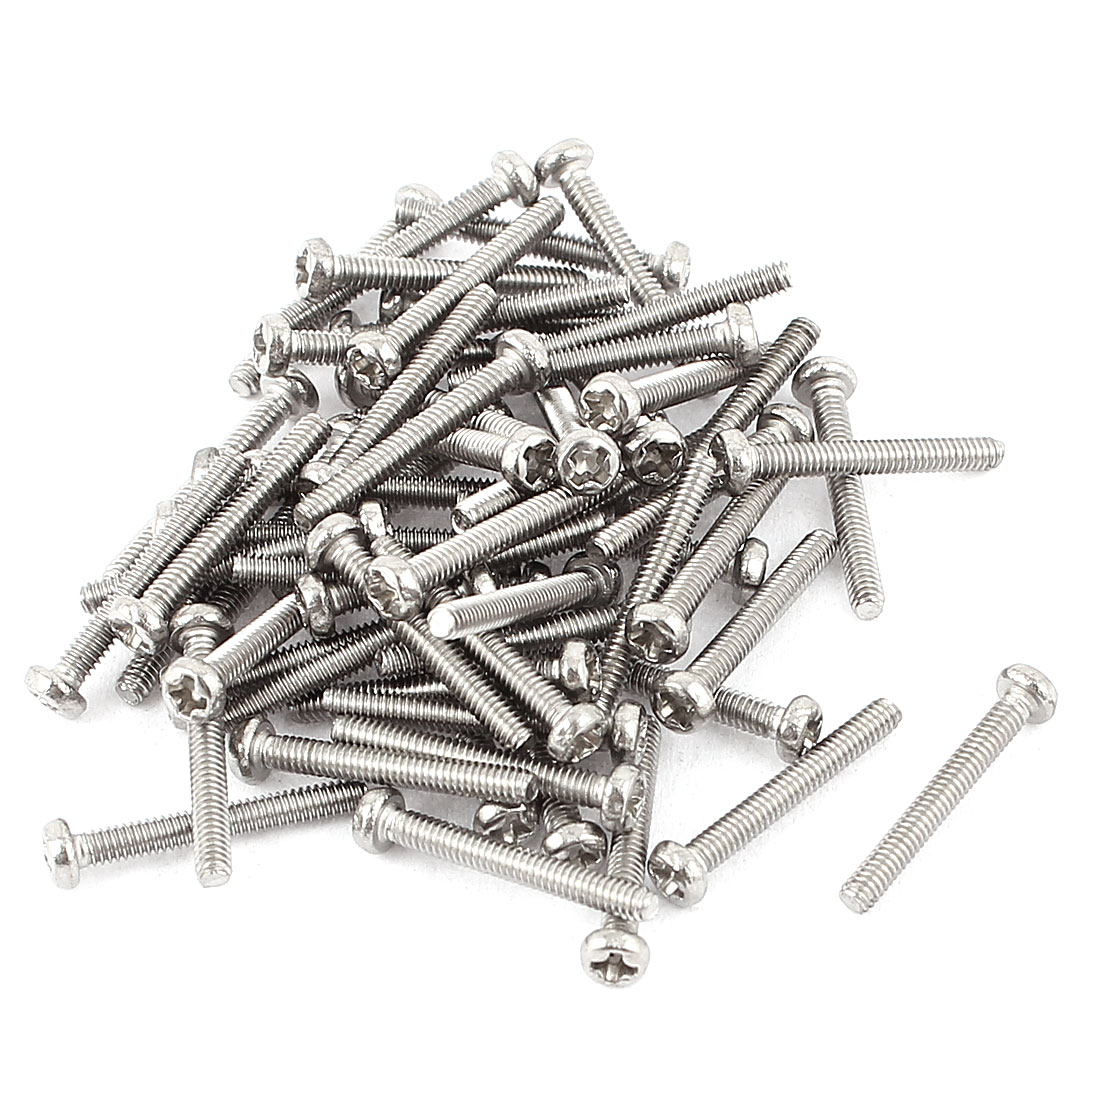 M2 x 14mm 304 Stainless Steel Crosshead Phillips Pan Head Screws Bolt 60pcs